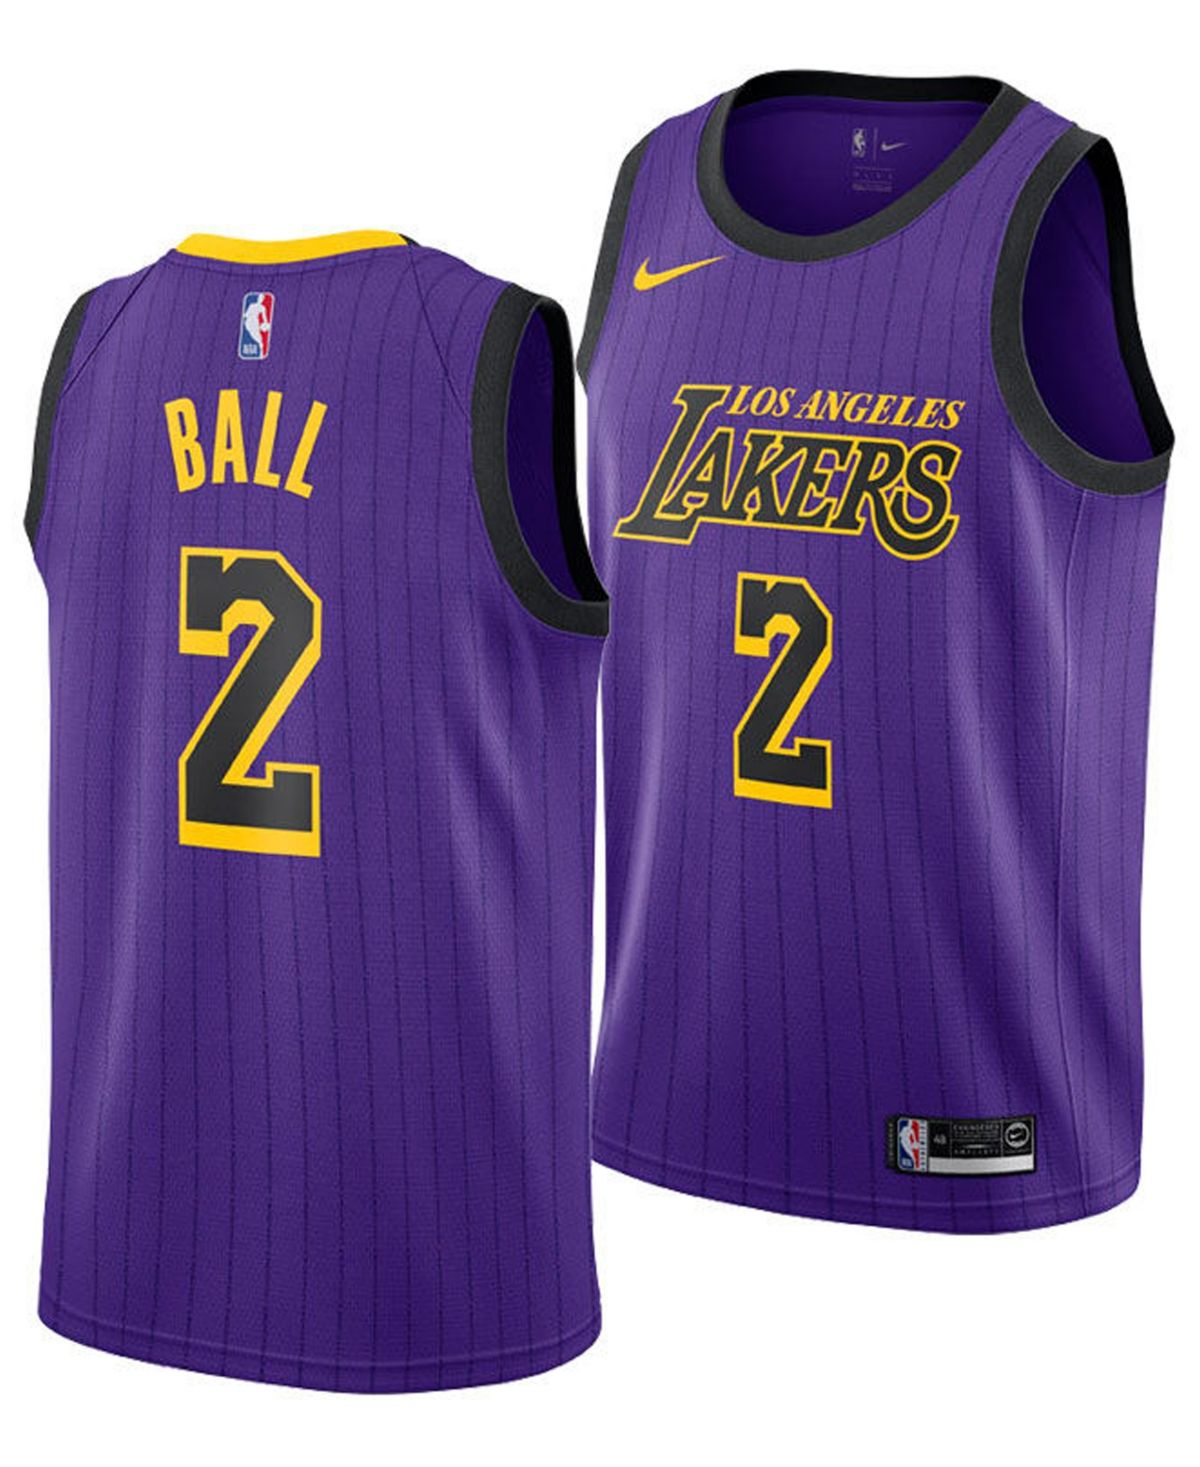 Pin By Armenuhi Damirian Melkonian On Clothers In 2020 Sport Outfit Men Los Angeles Lakers Nike Men